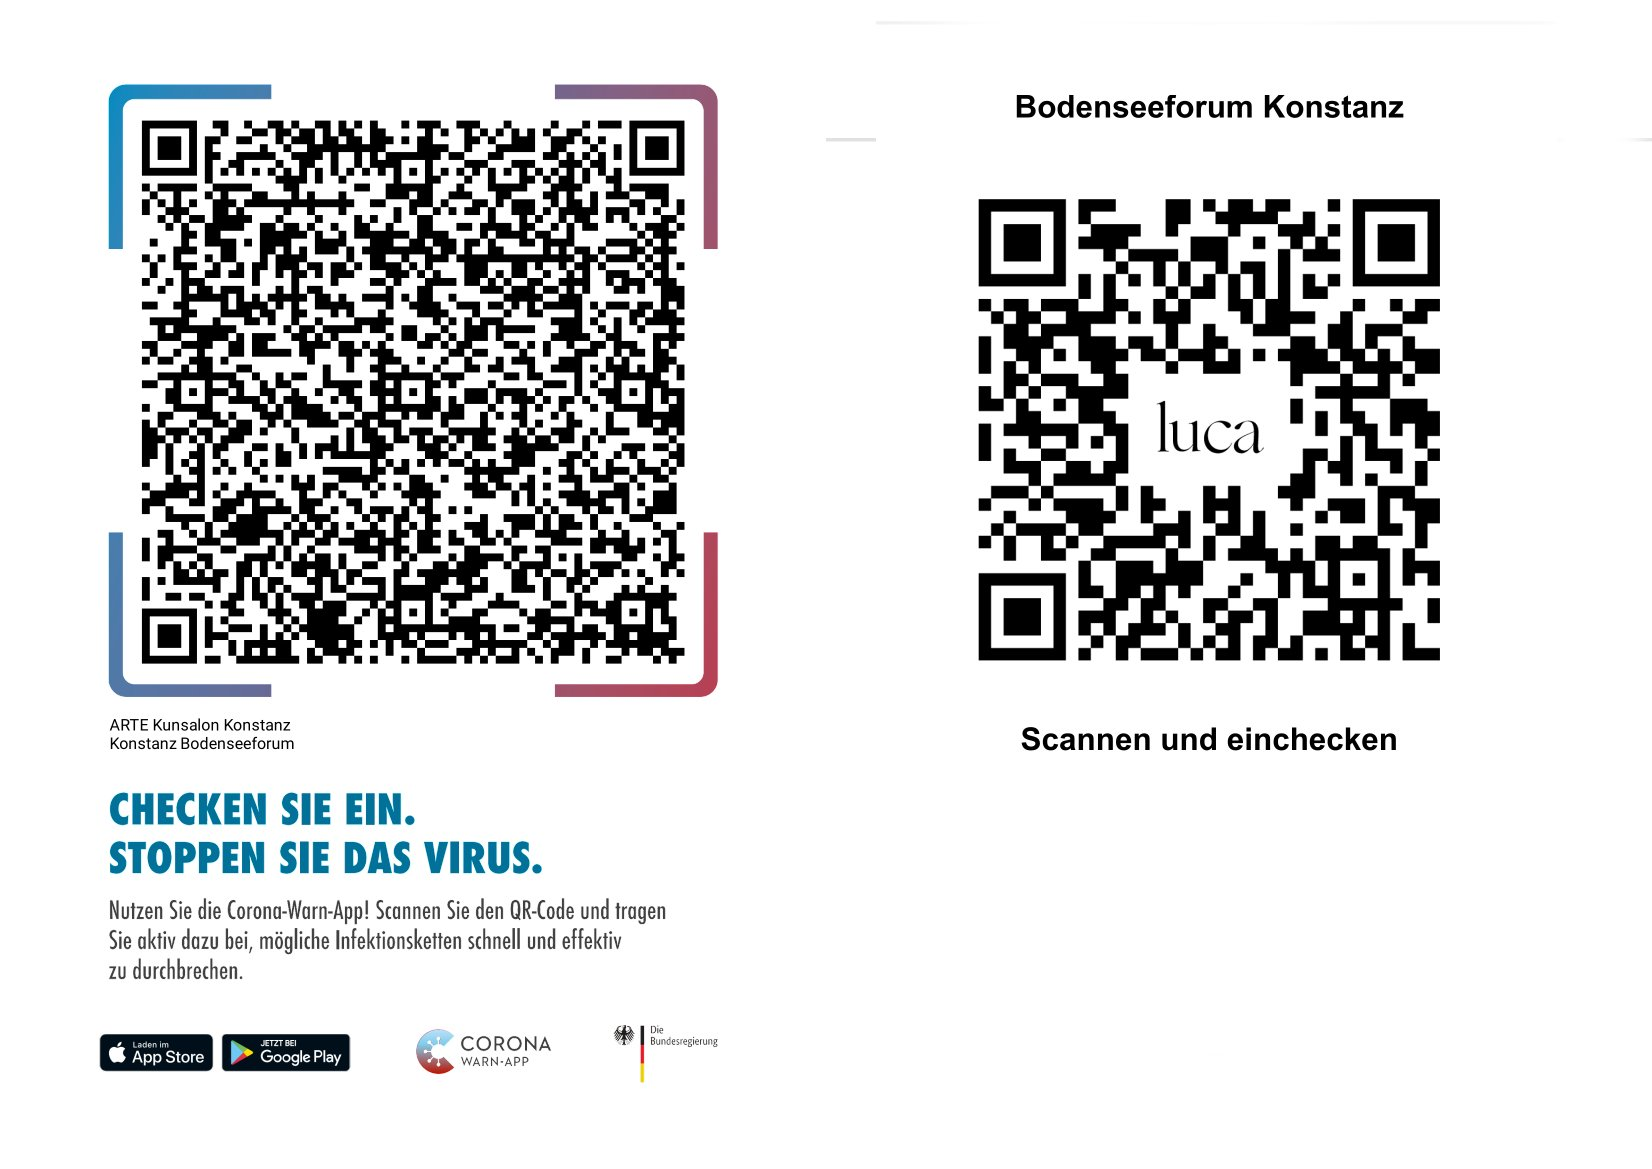 Scan-Codes-Check-in